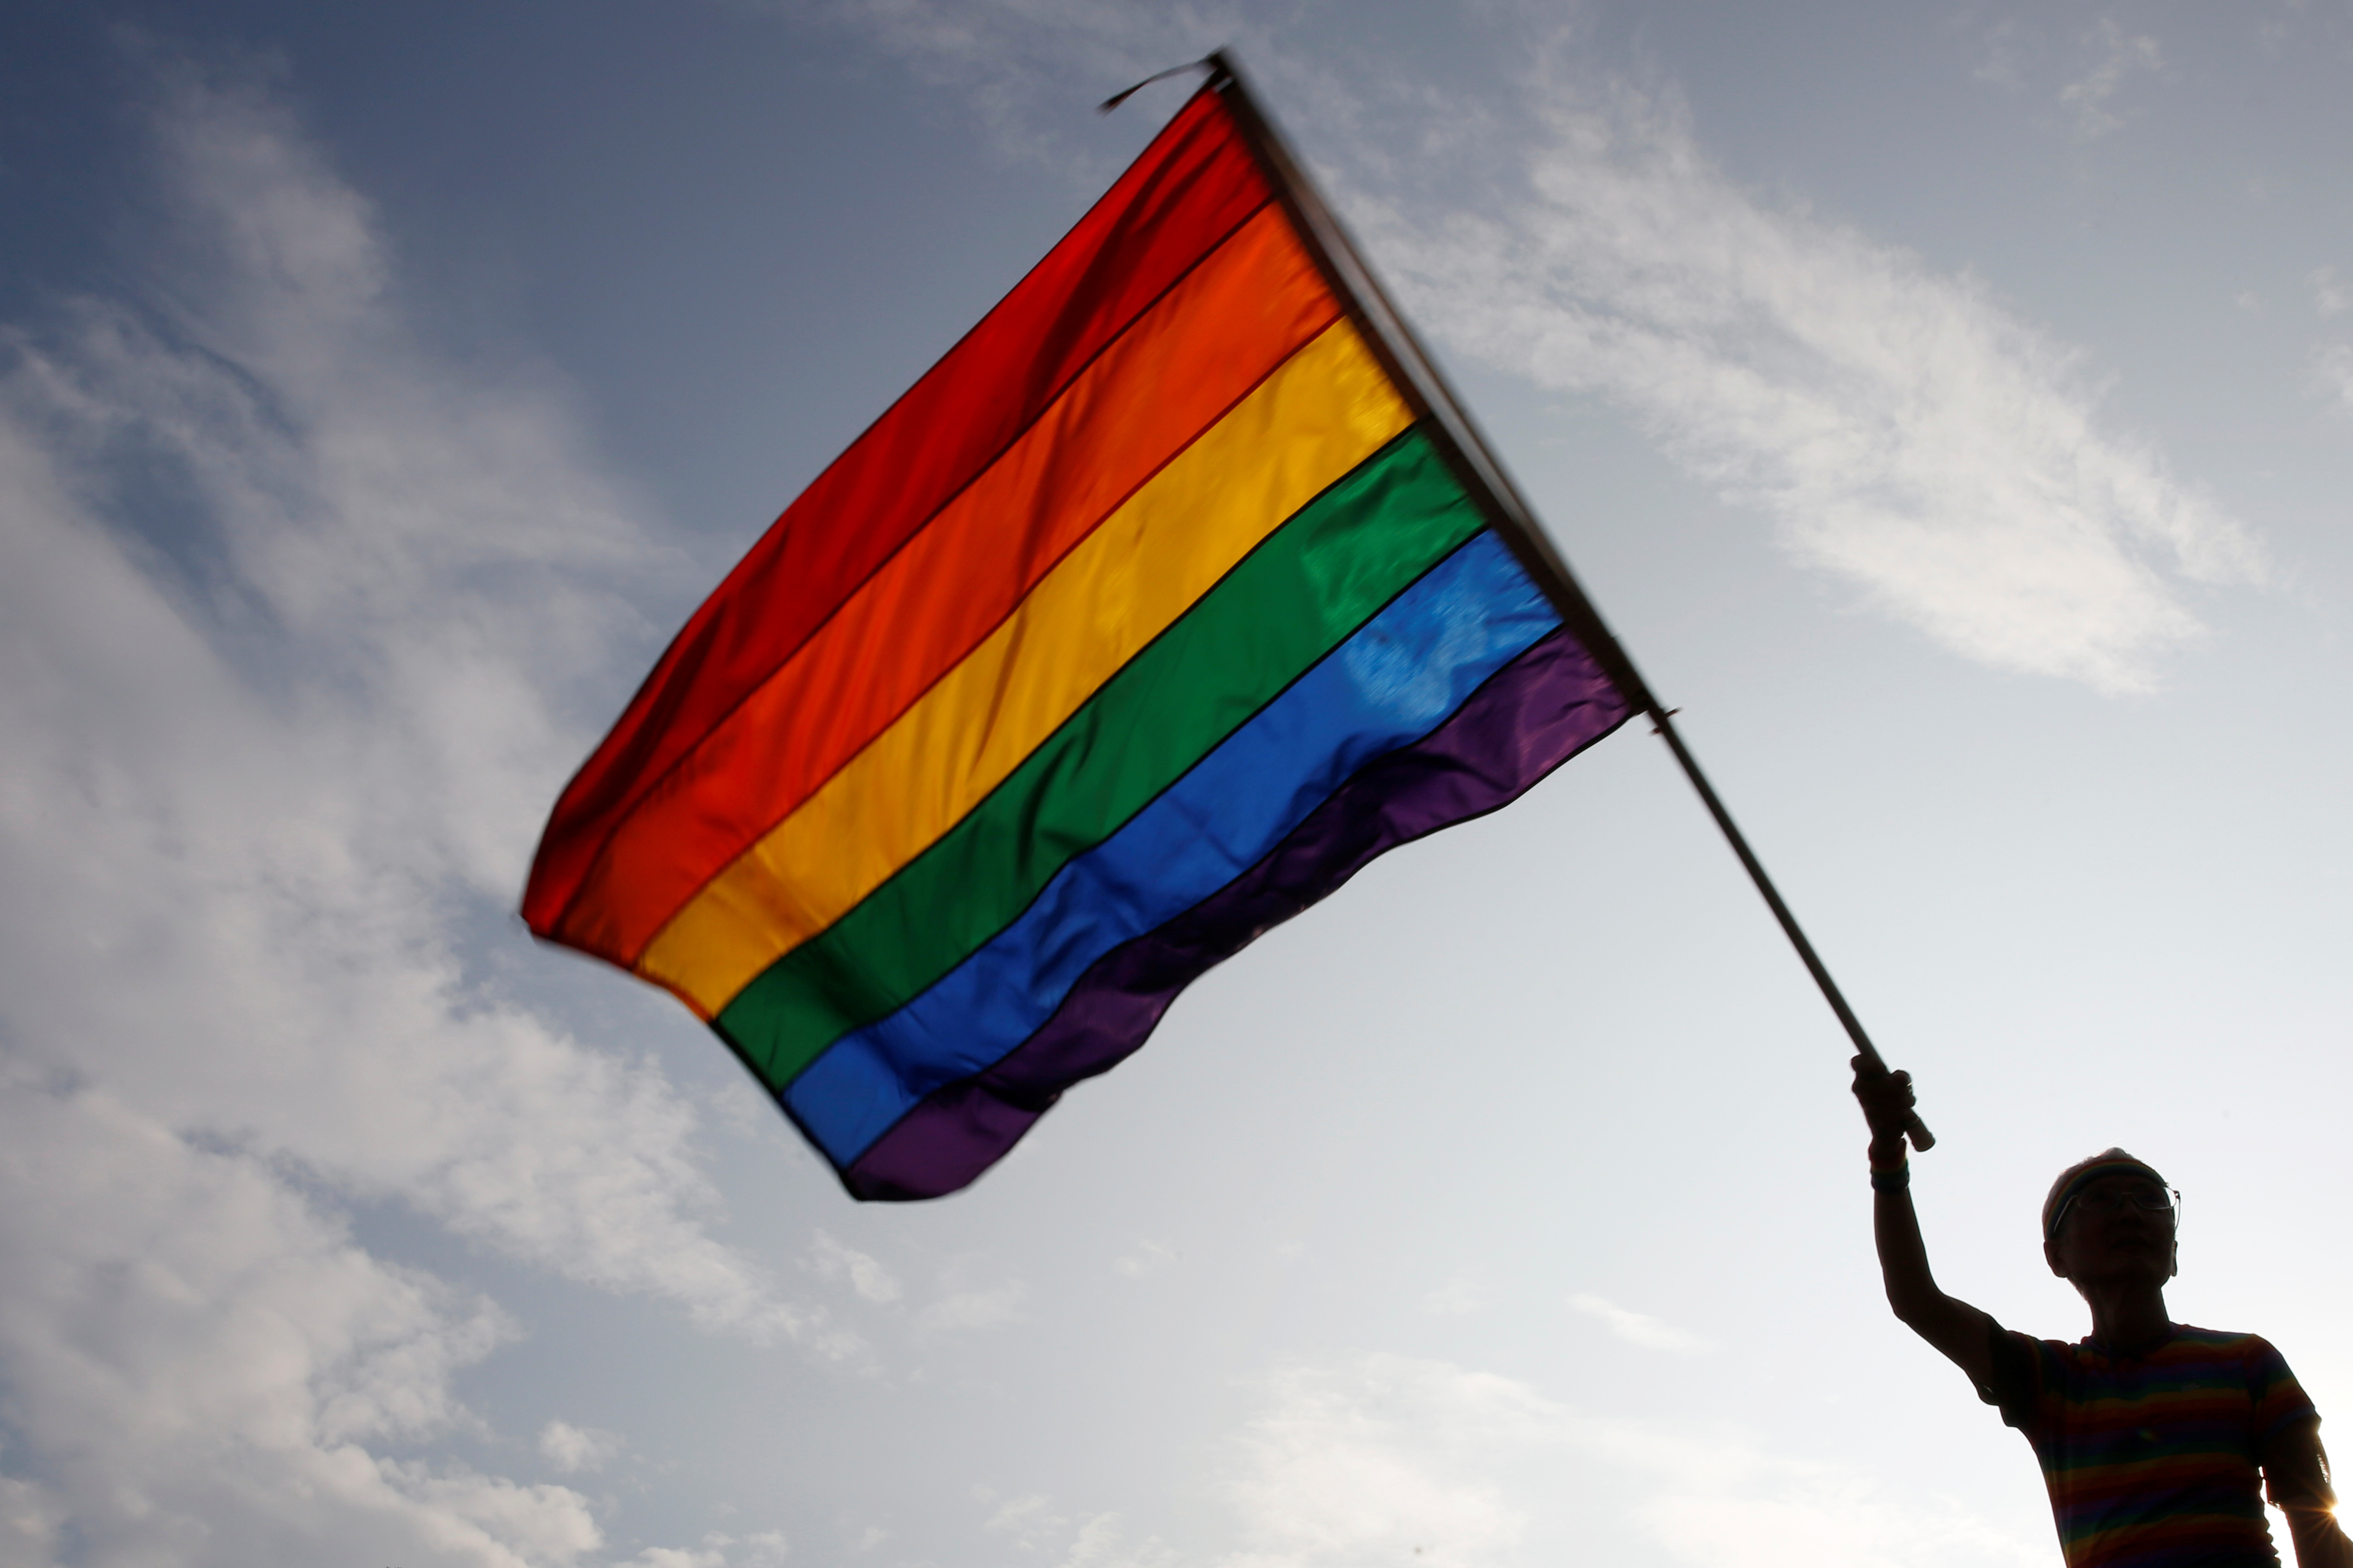 Gay rights activist Chi Chia-wei waves a rainbow flag during a rally to support the upcoming same-sex marriage referendum, in Taipei, Taiwan November 18, 2018. REUTERS/Tyrone Siu